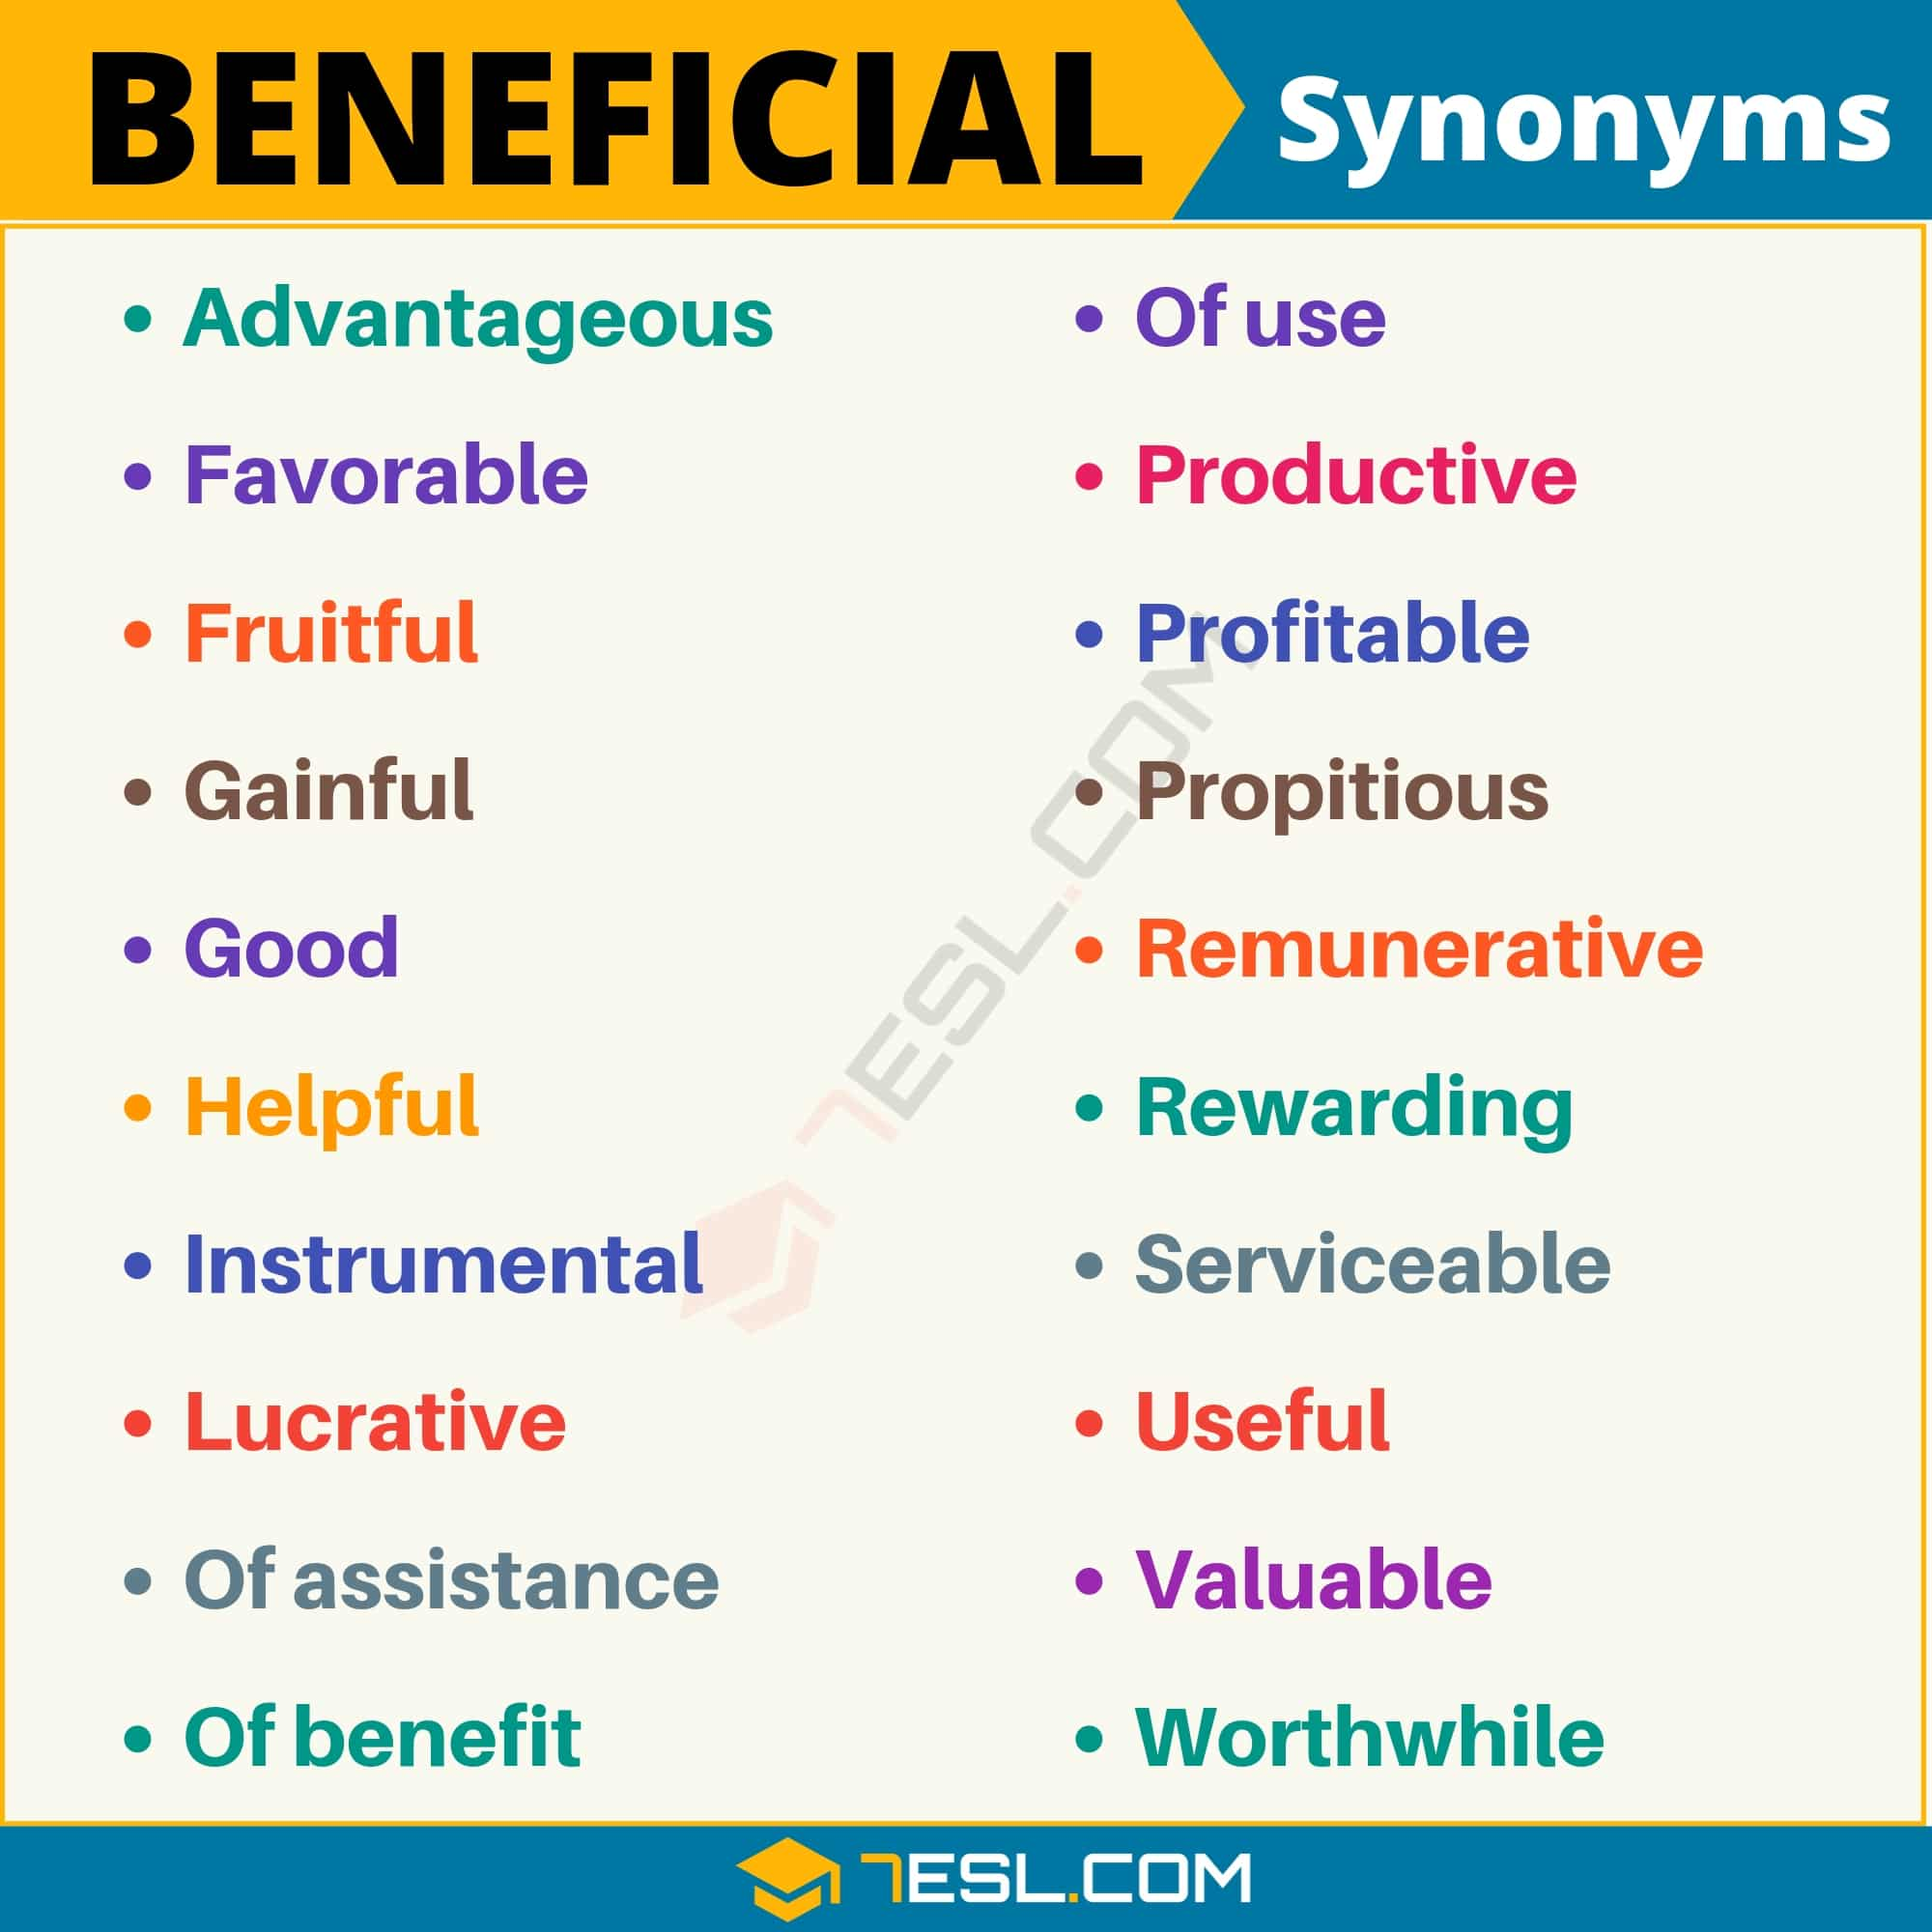 BENEFICIAL Synonym: List of 20 Synonyms for Beneficial with Examples